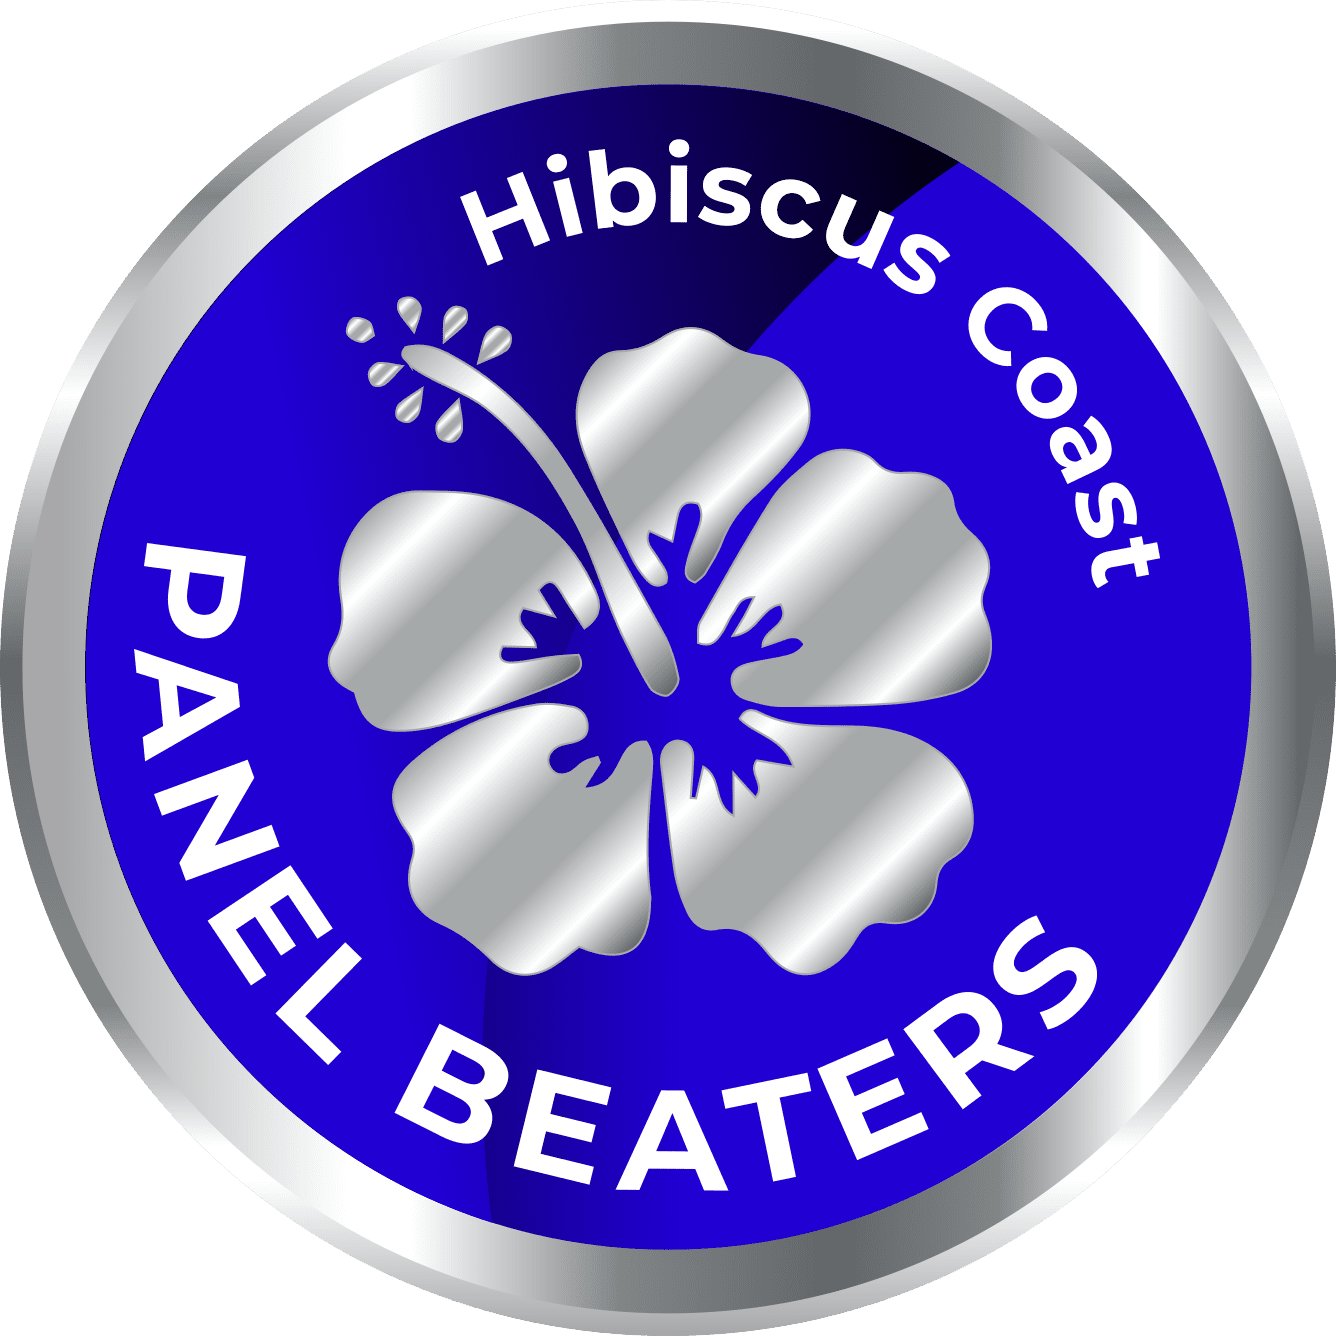 Hibiscus Coast Panel Beaters